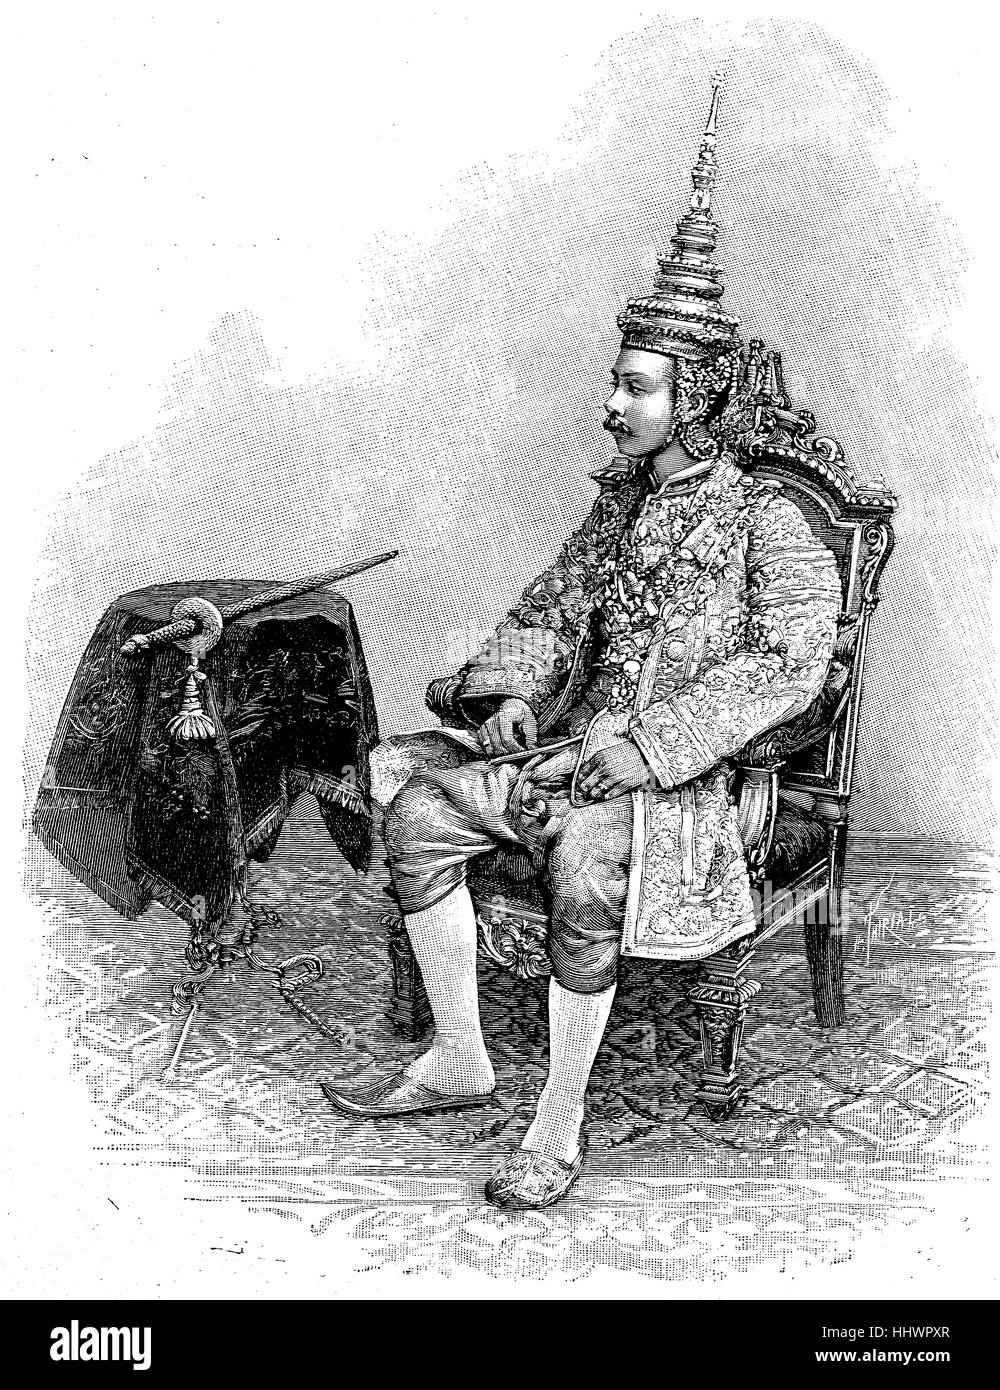 Mongkut or Rama IV, King of Siam in the Ornat, 18 October 1804 in Bangkok, Thailand - October 18, 1868, was king - Stock Image